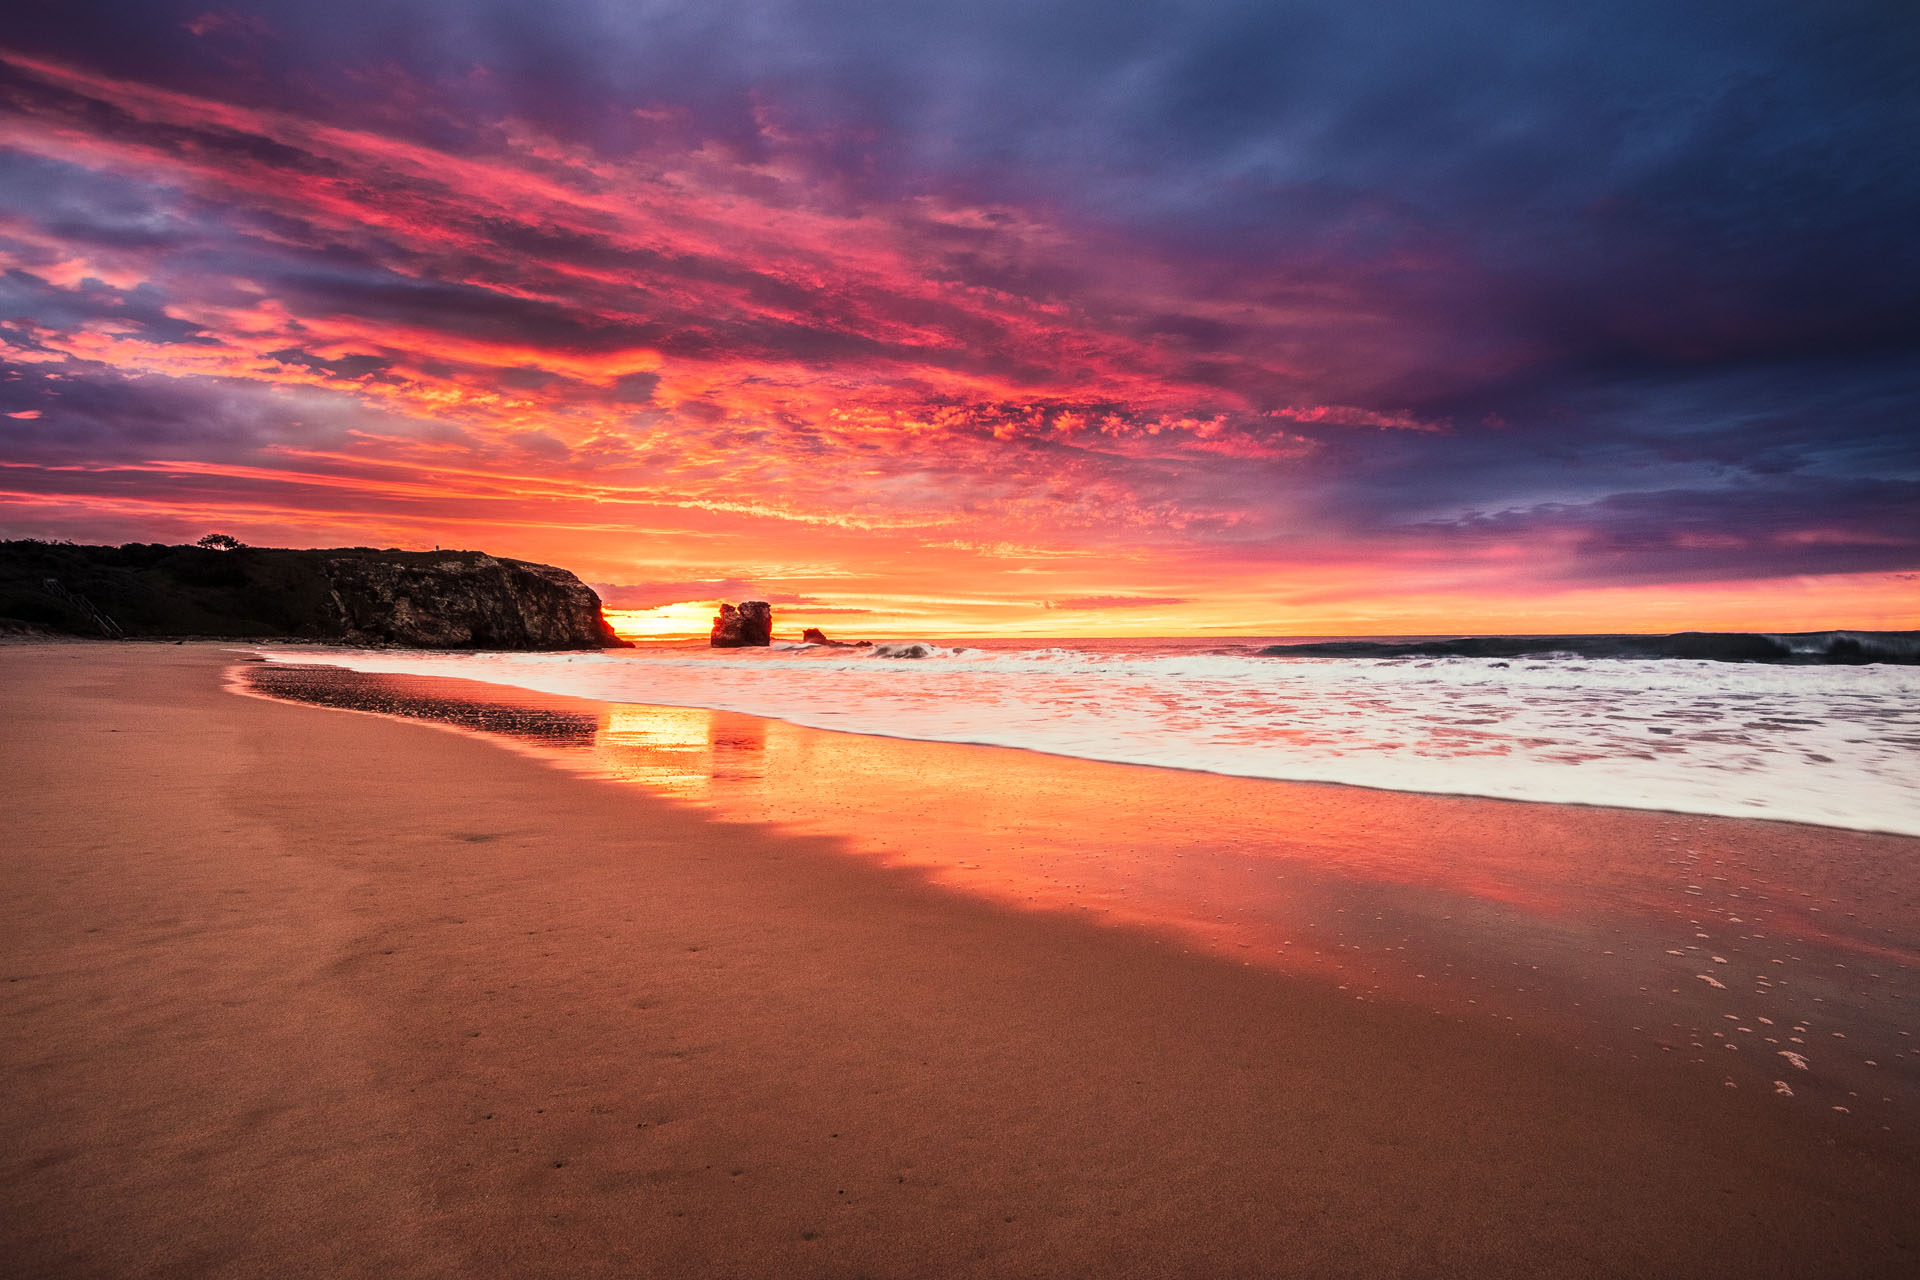 Vibrant Red Rock sunrise - Franzi Photography